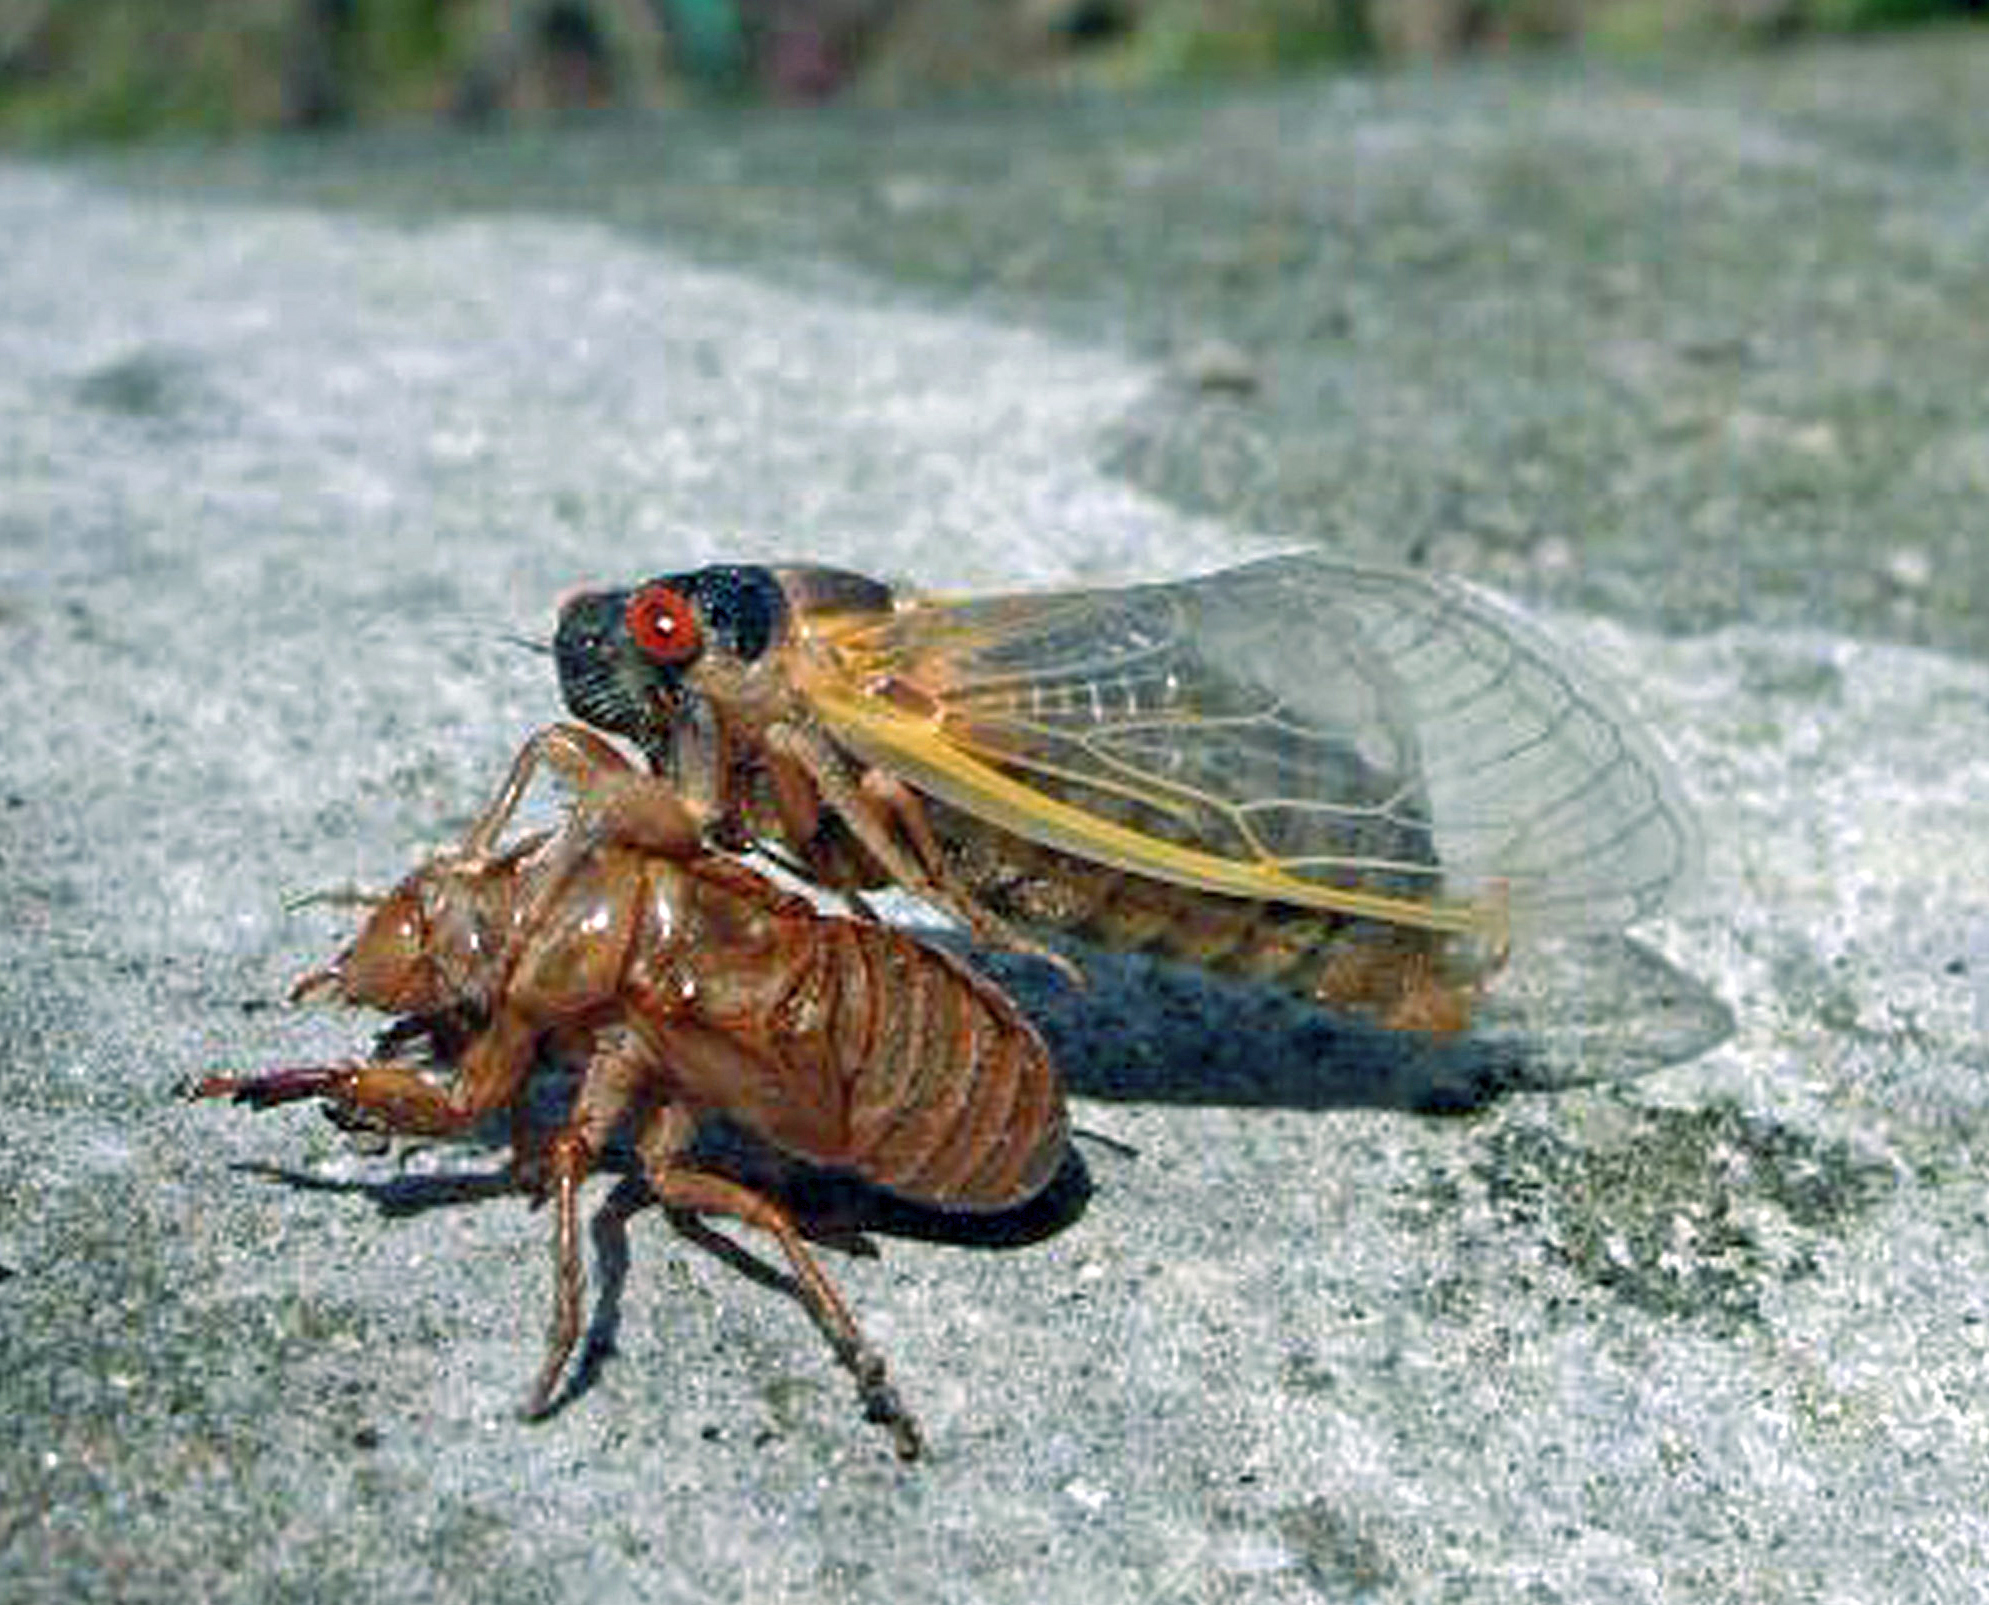 Insects - Activity 7: Metamorphosis of insects